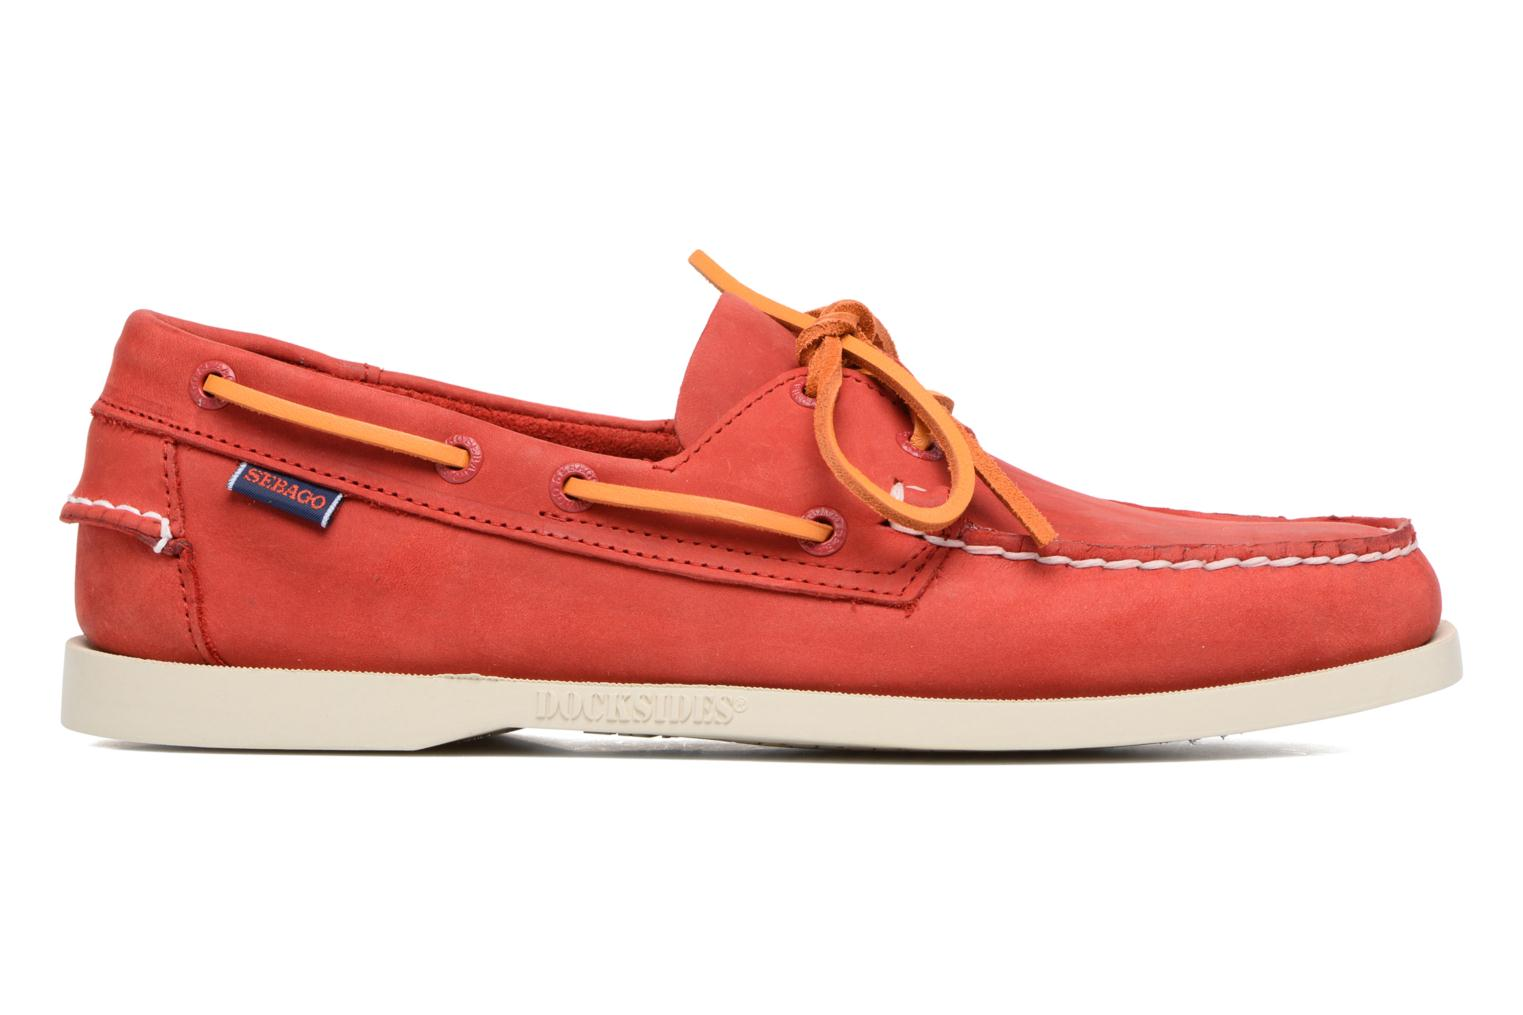 Docksides M Red nubuck